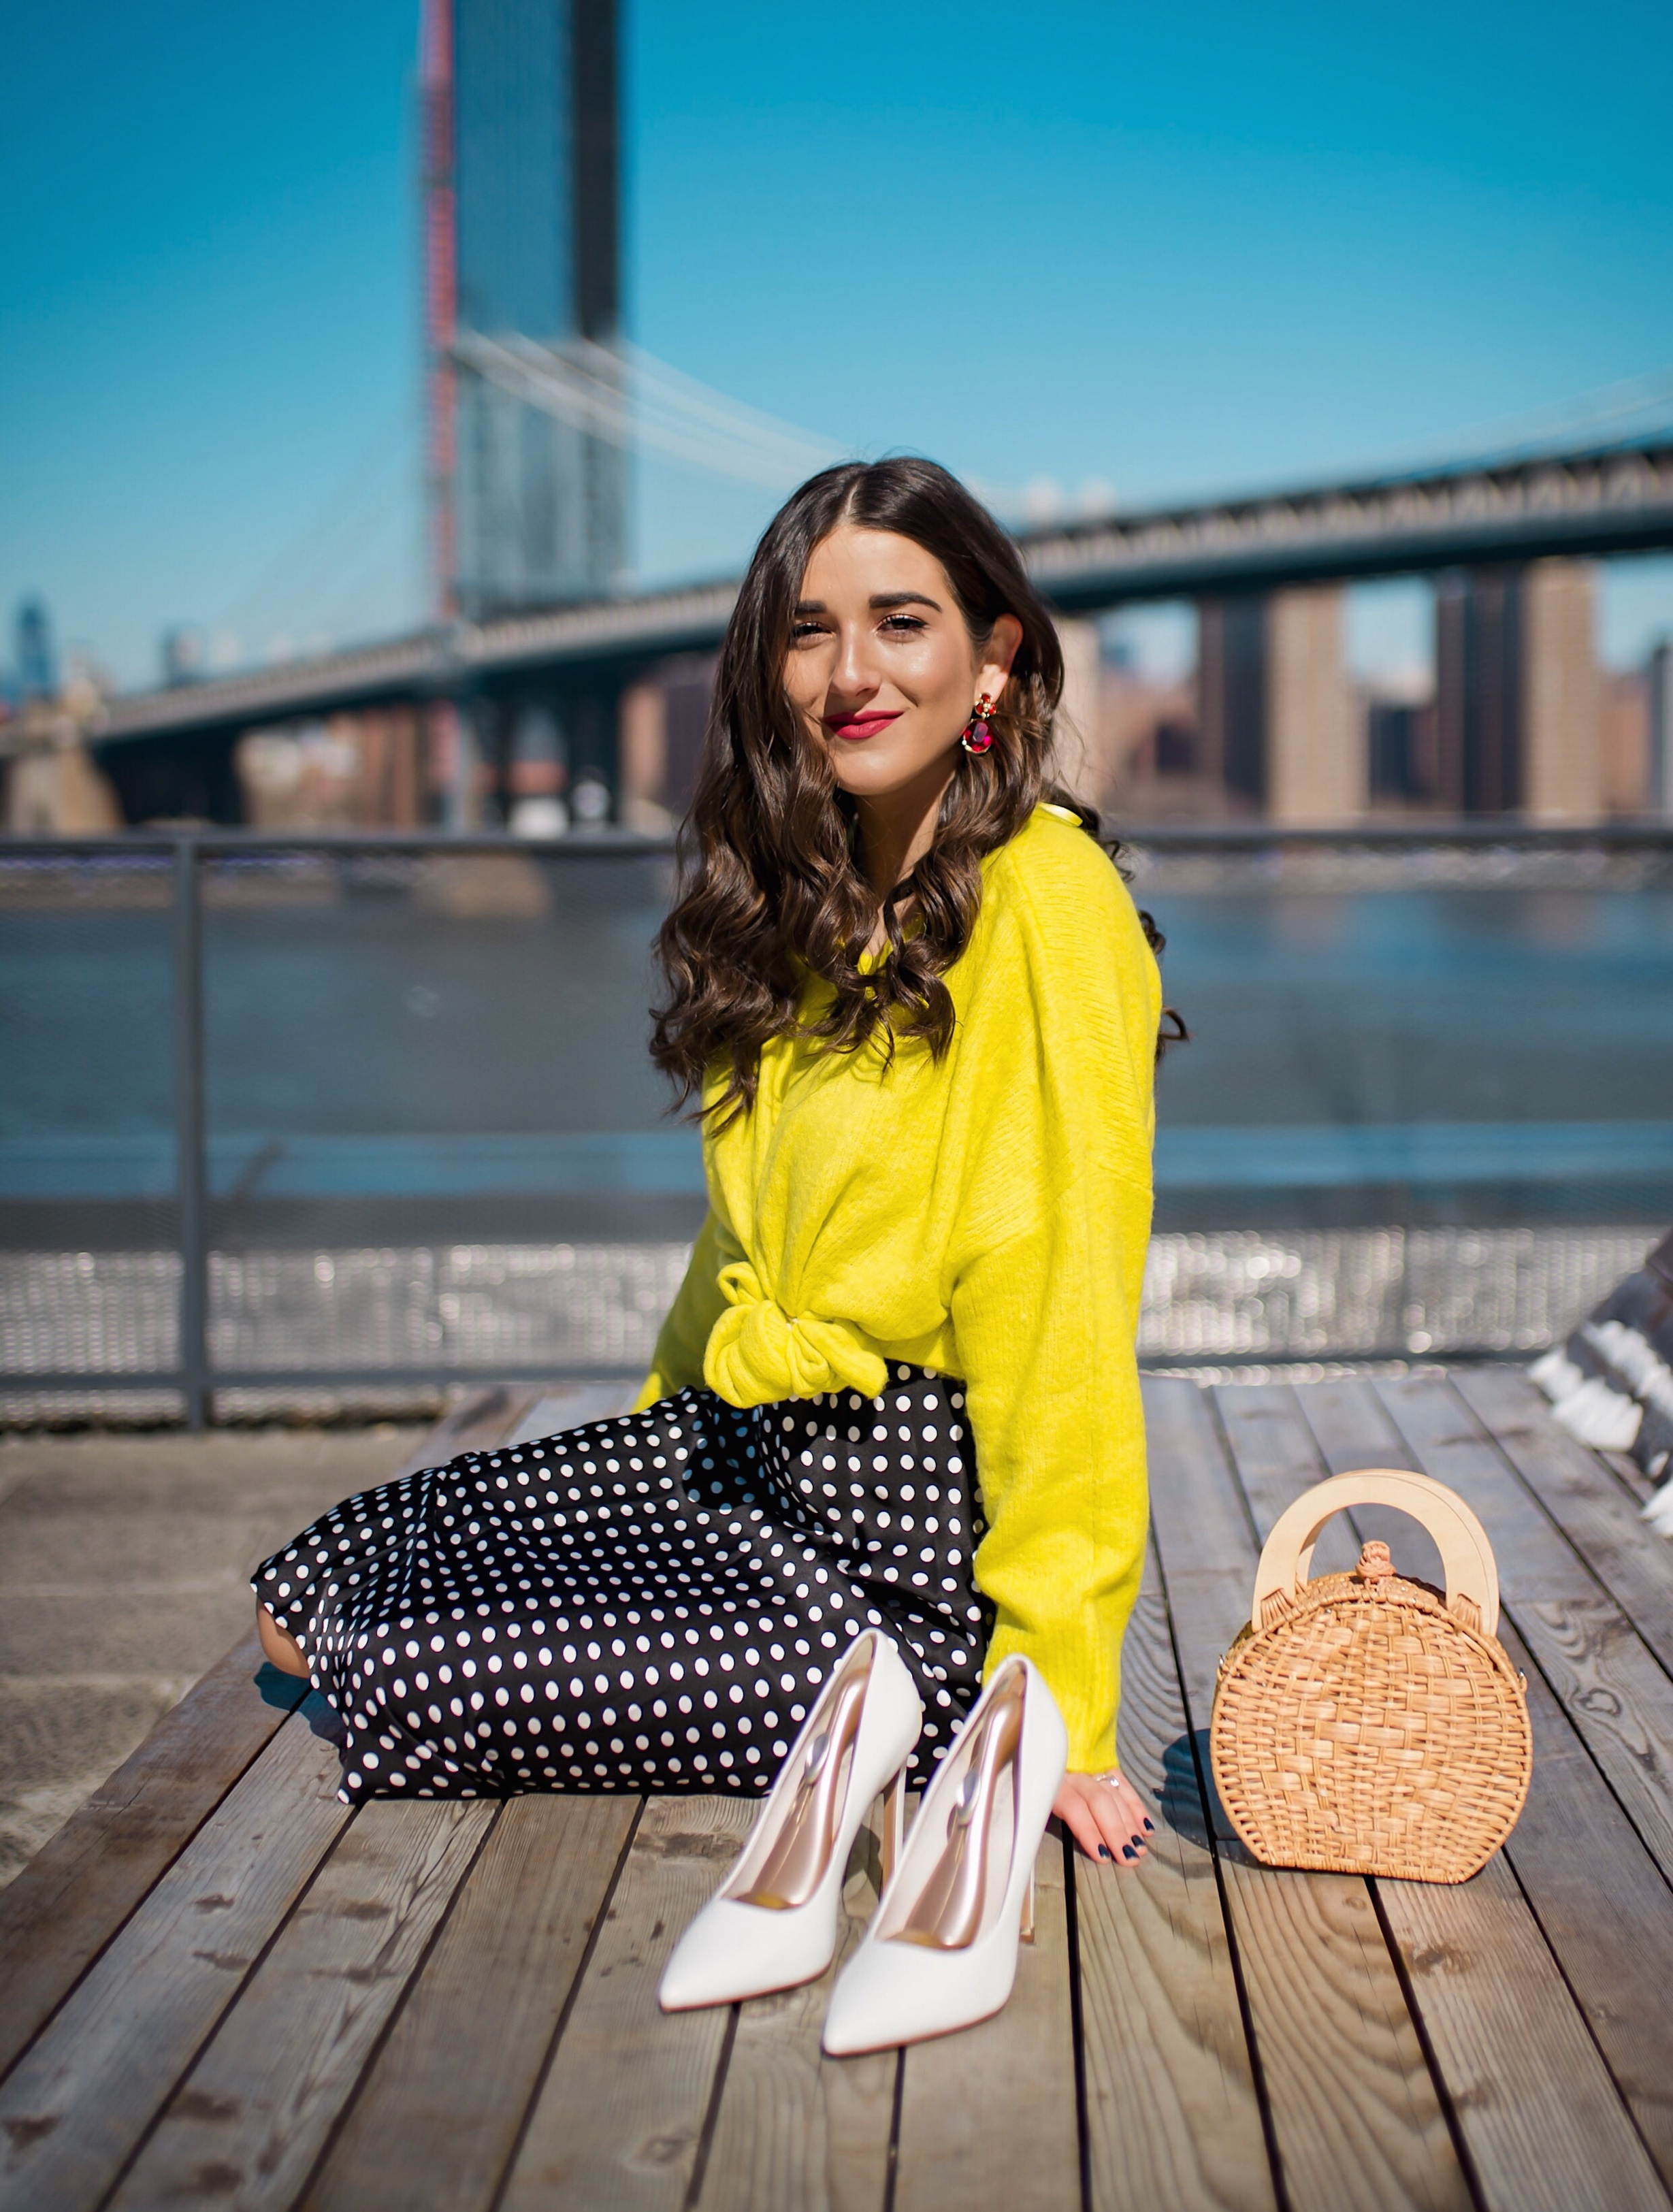 How I Wound Up With Boring White Dishes Navy Polka Dot Dress Neon Yellow Knotted Sweater Esther Santer Fashion Blog NYC Street Style Blogger Outfit OOTD Trendy Shopping Girl What How To Wear White Heels Brooklyn Bridge Laurel Creative Photoshoot Dumbo.JPG